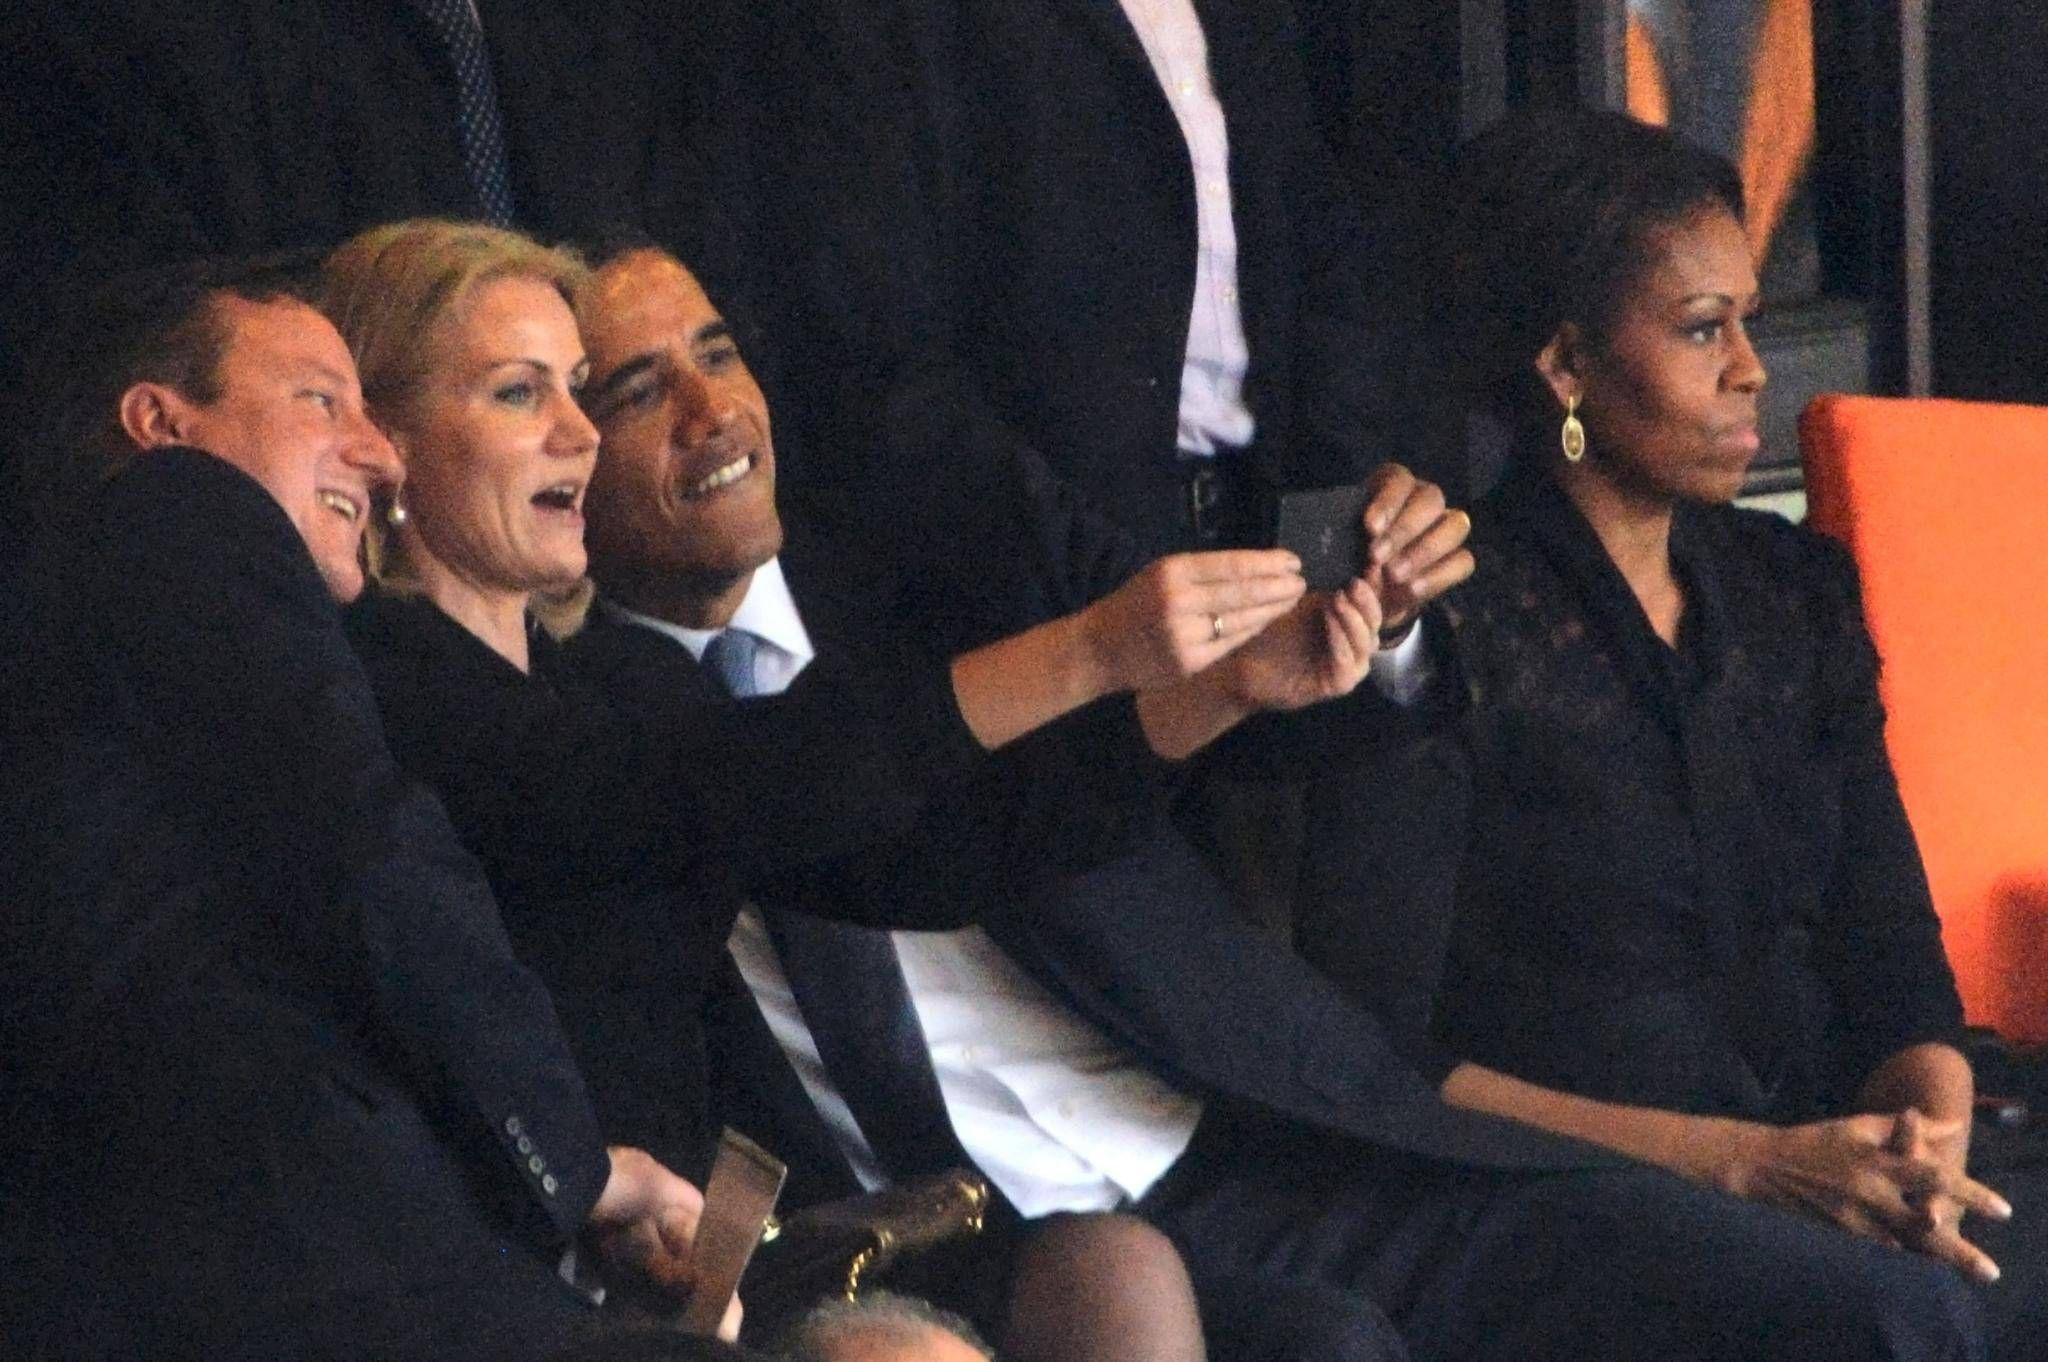 Russell Smith: Selfies blur the line between high-art and social